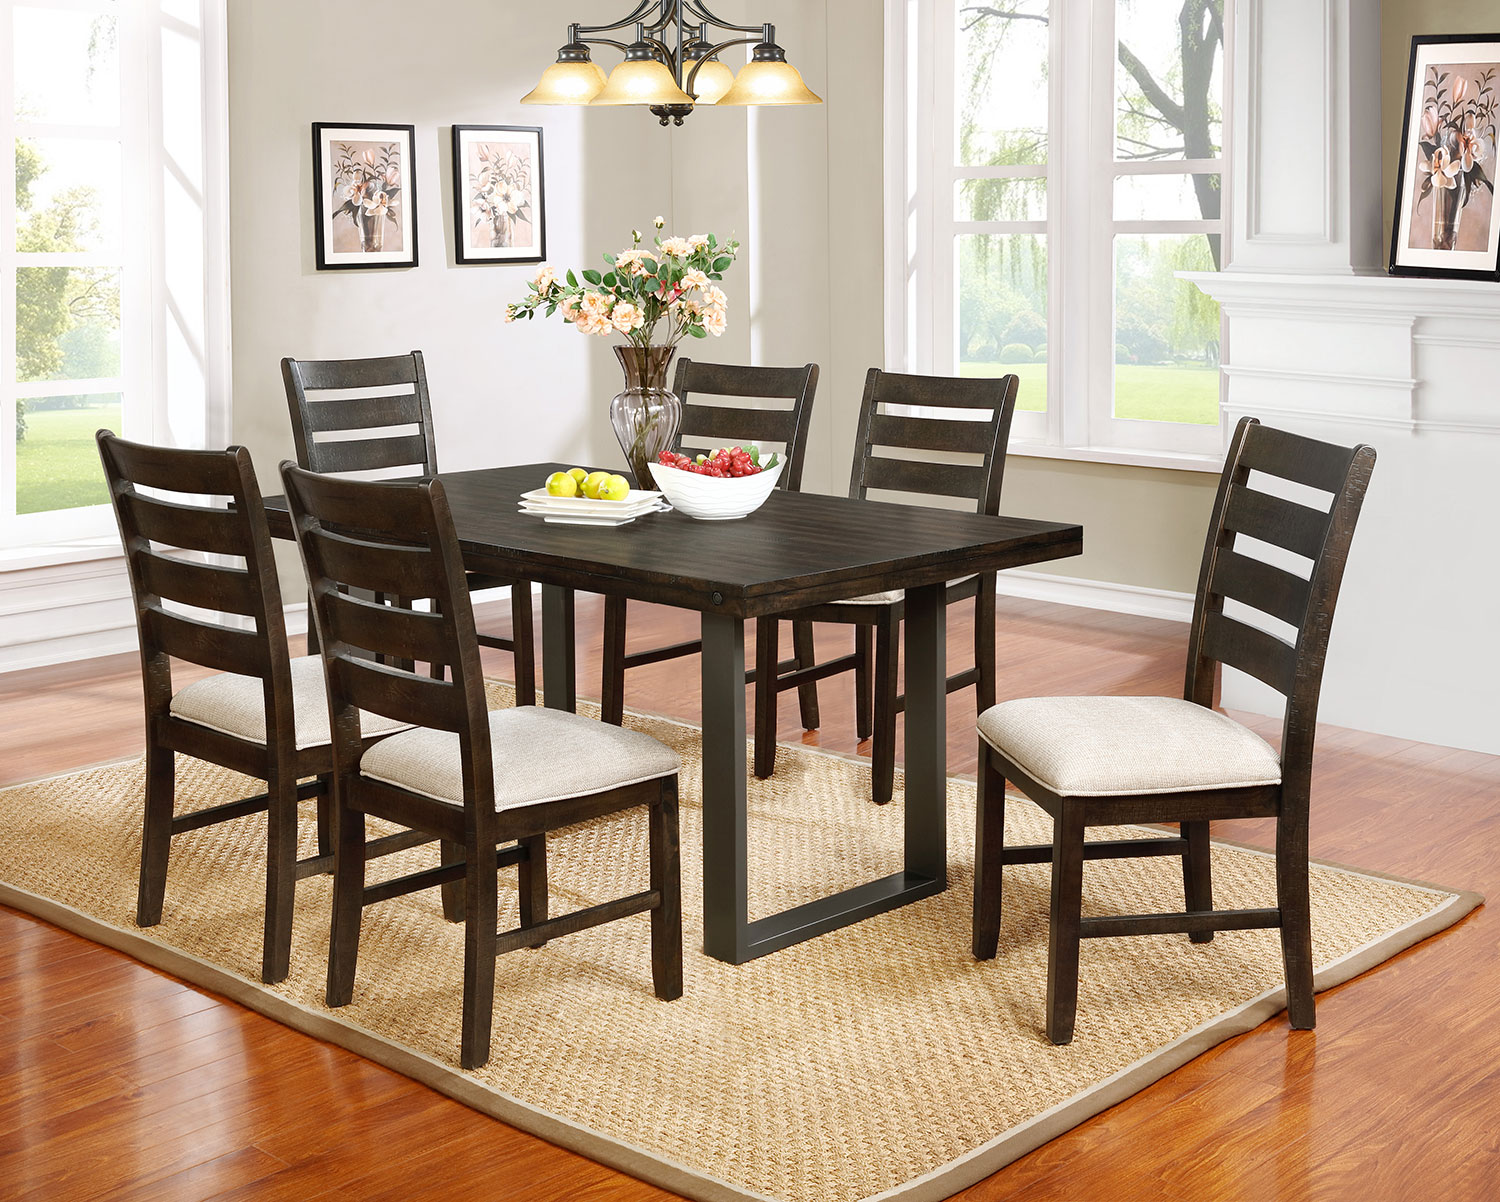 Rubberwood Kitchen Table Jasper Dining Table The Brick